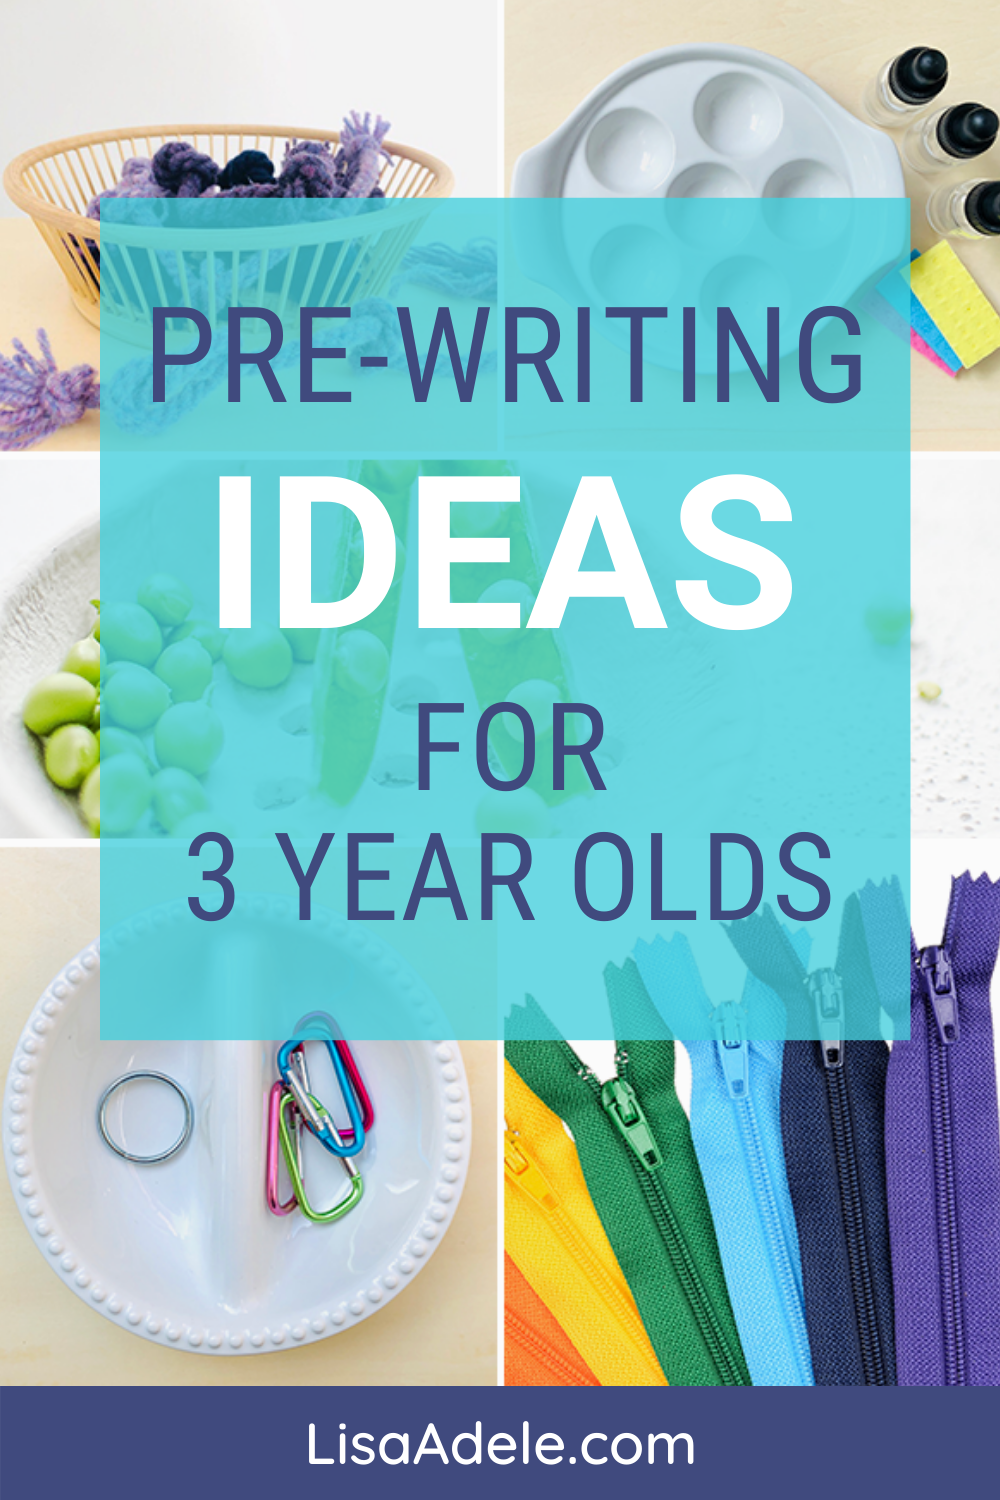 Pre-writing activities ideas for toddlers and preschoolers to get ready for writing letters